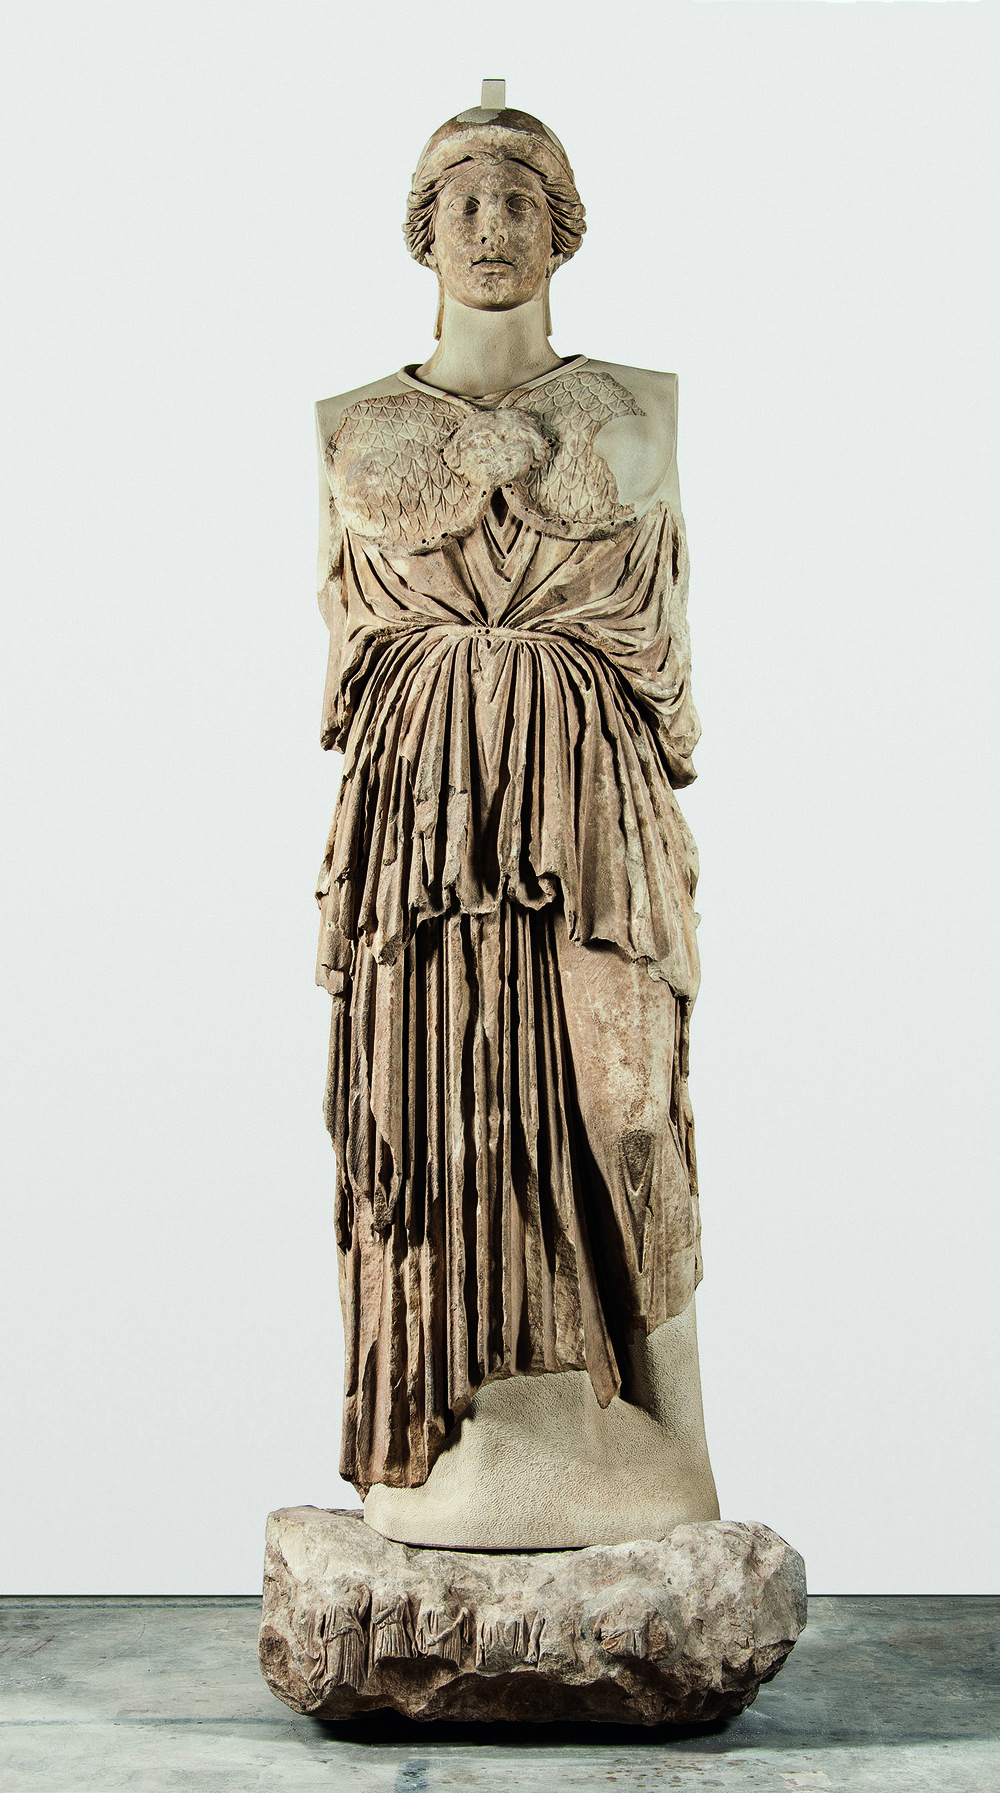 """Statue of Athena Parthenos,"" Greek, Hellenistic period, circa 170 B.C., copy of a mid-5th century chryselephantine cult statue of ""Athena Parthenos"" by Pheidias, marble, Antikensammlung, Staatliche Museen zu Berlin. Image copyright SMB/Antikensammlung."